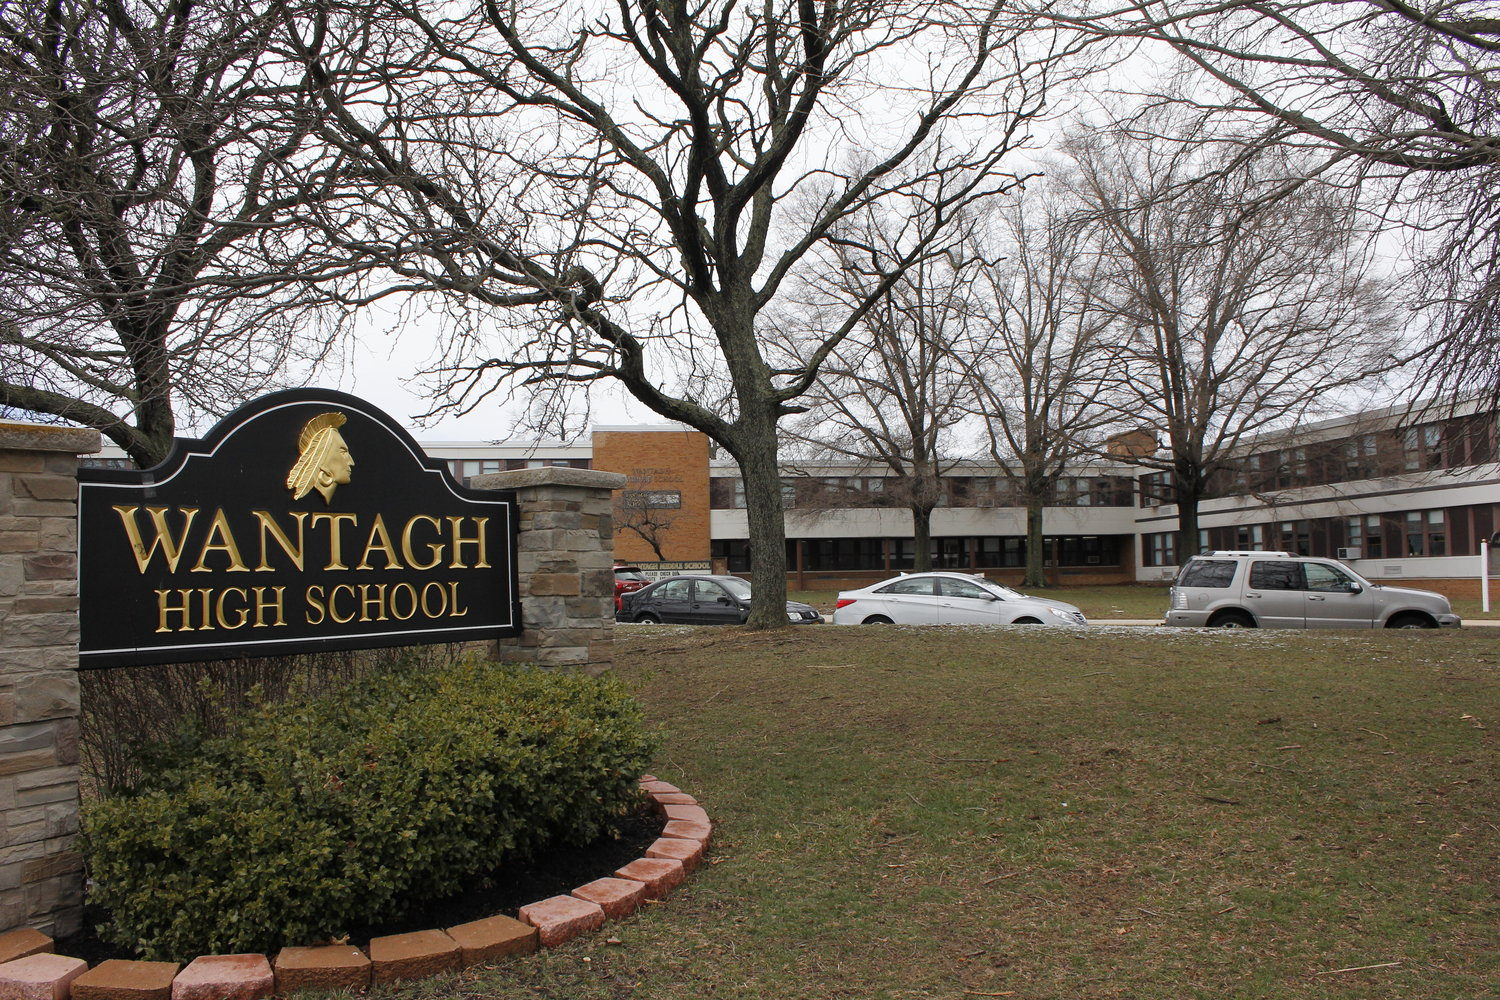 Wantagh High School and Wantagh Middle School were closed on Oct. 19 due to a positive Covid-19 test.